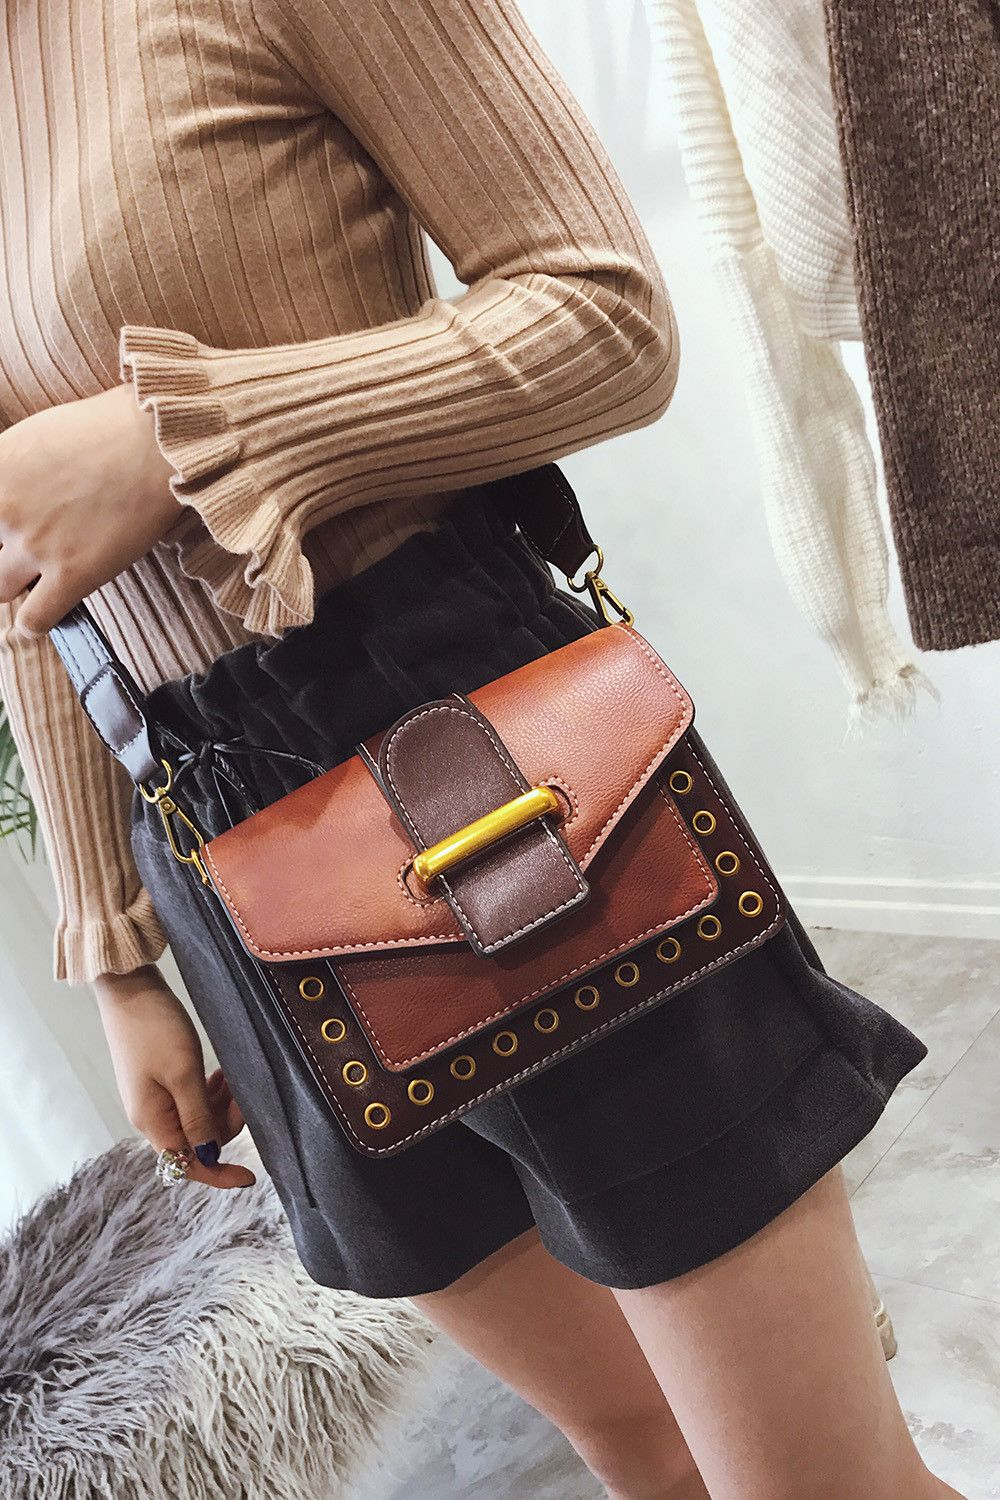 Rivet Small Bag Shoulder Strap Shoulder Bag Fashion Bag Hit Small Color